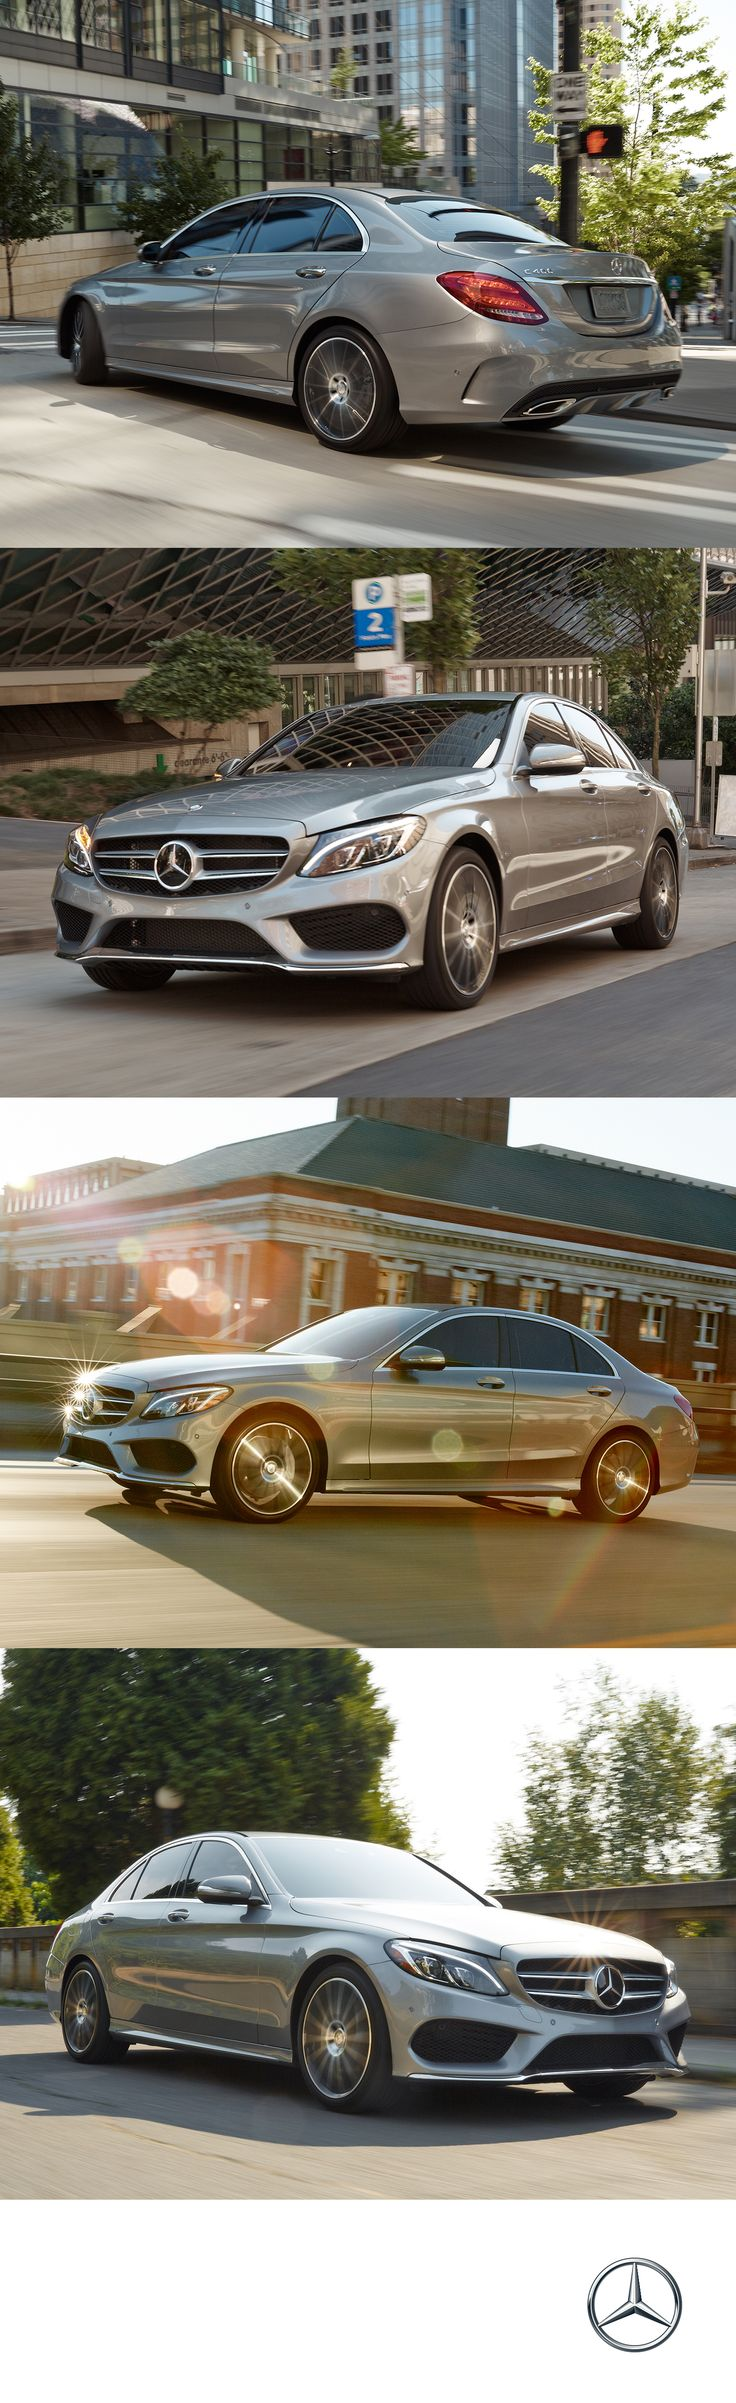 Sporty, spacious, and stylish. The Mercedes-Benz C300 offers everything from supple leather seating to the latest in innovative technology. Its rich and roomy cabin gives you the best seats in the house no matter where life takes you.